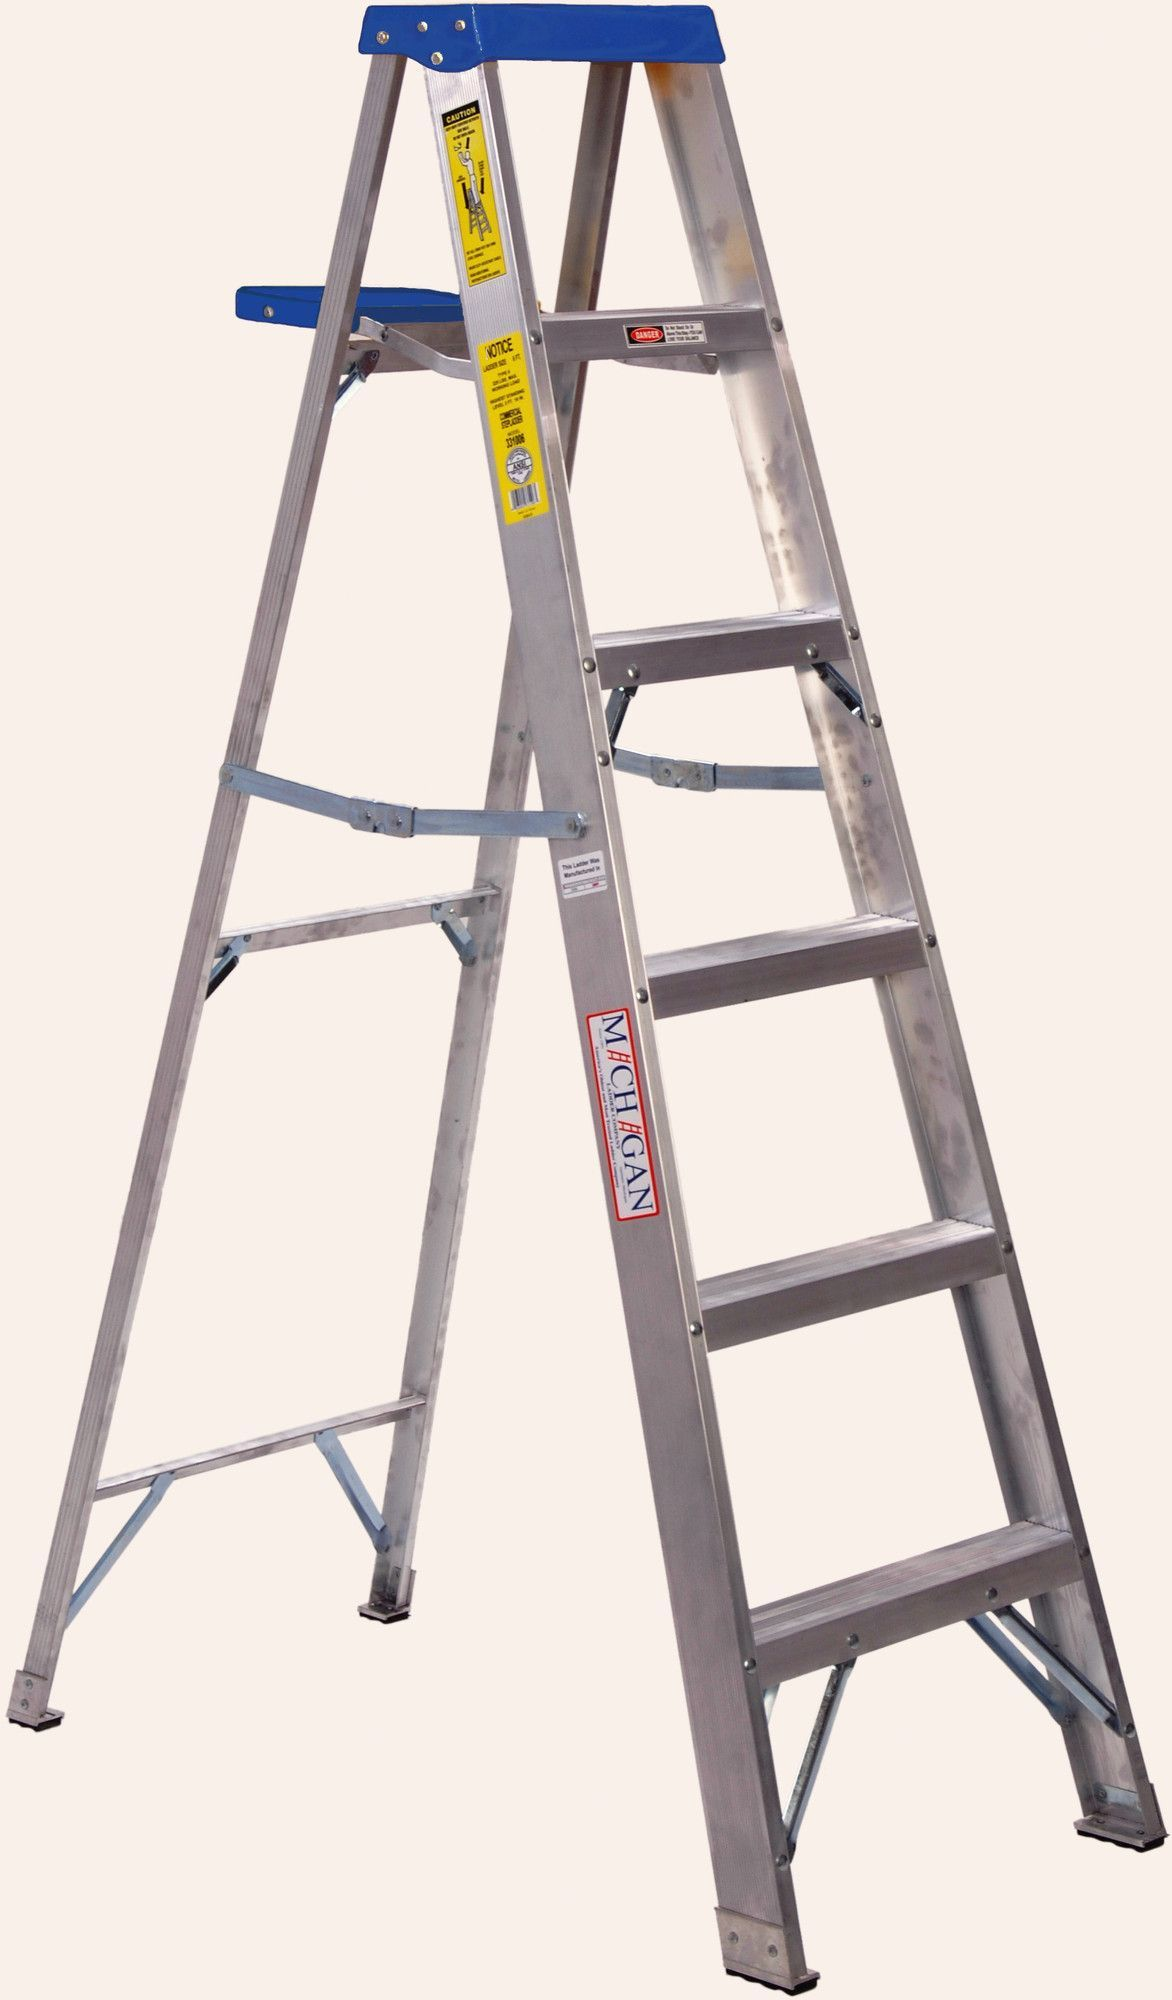 Heavy Duty 4 ft Aluminum Step Ladder with 250 lb. Load Capacity